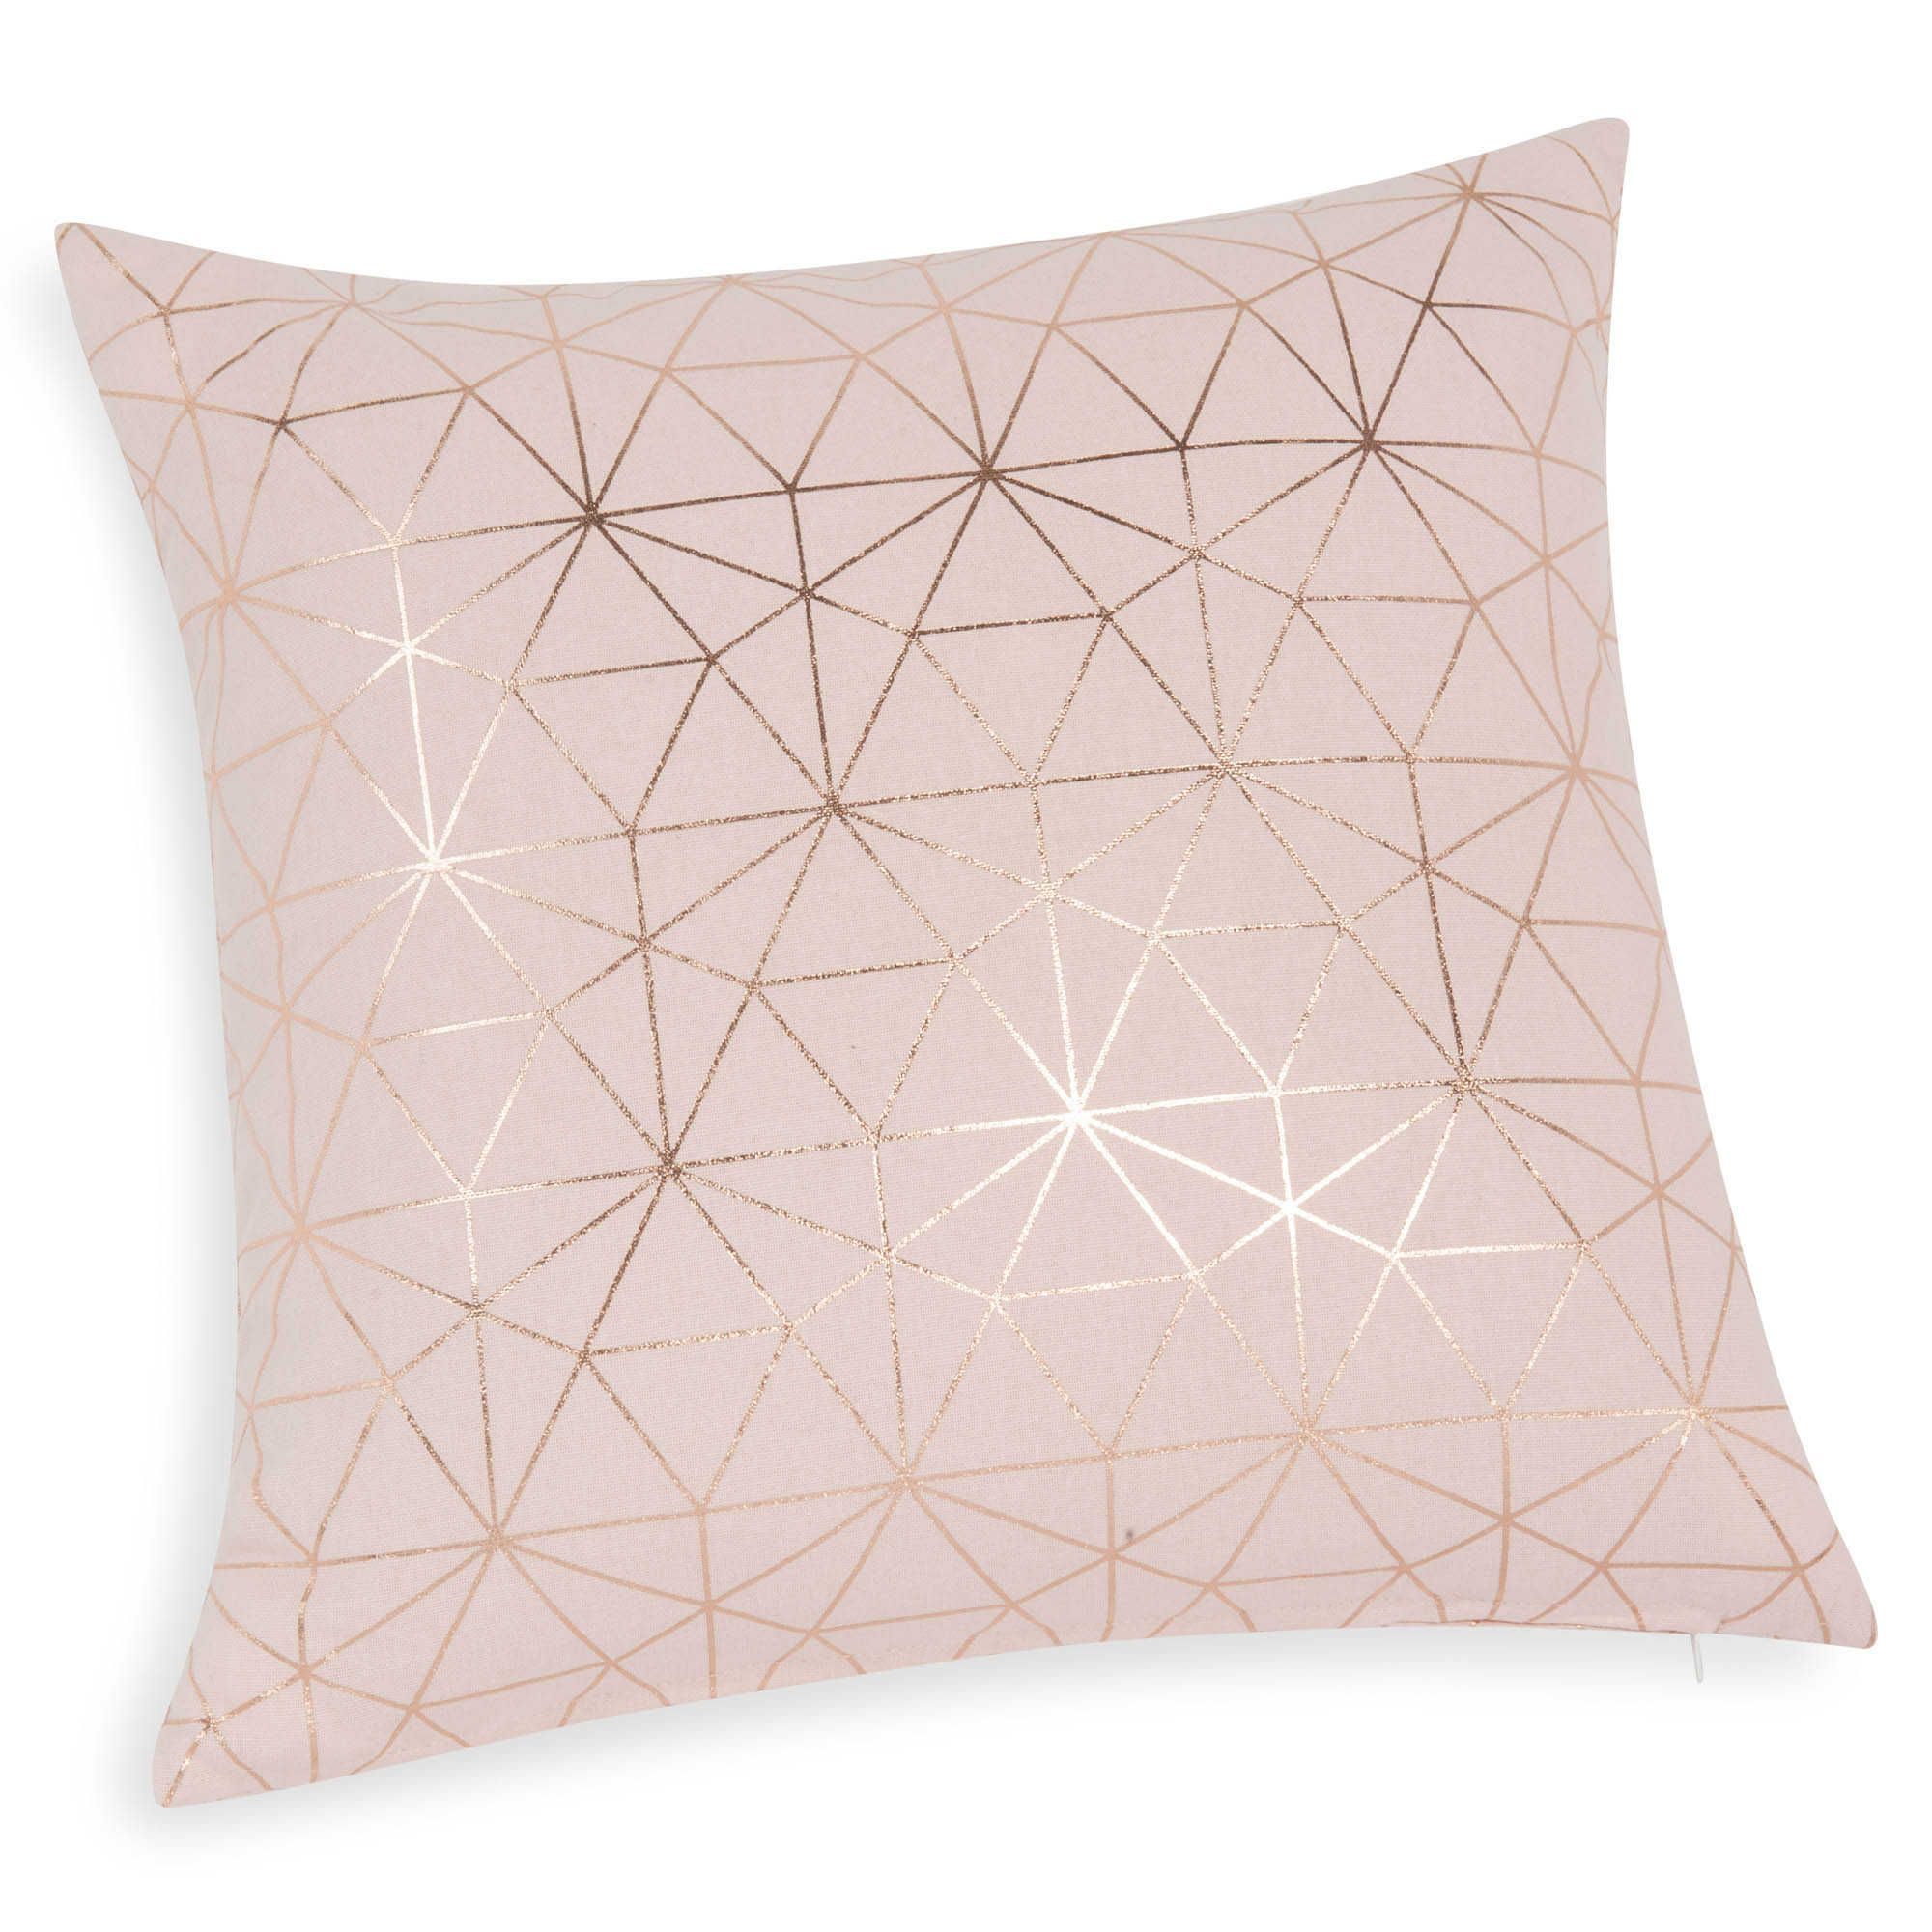 Housse De Coussin 45x45 Pink Cotton Cushion Cover 40 X 40 Cm In 2019 | Rose Gold